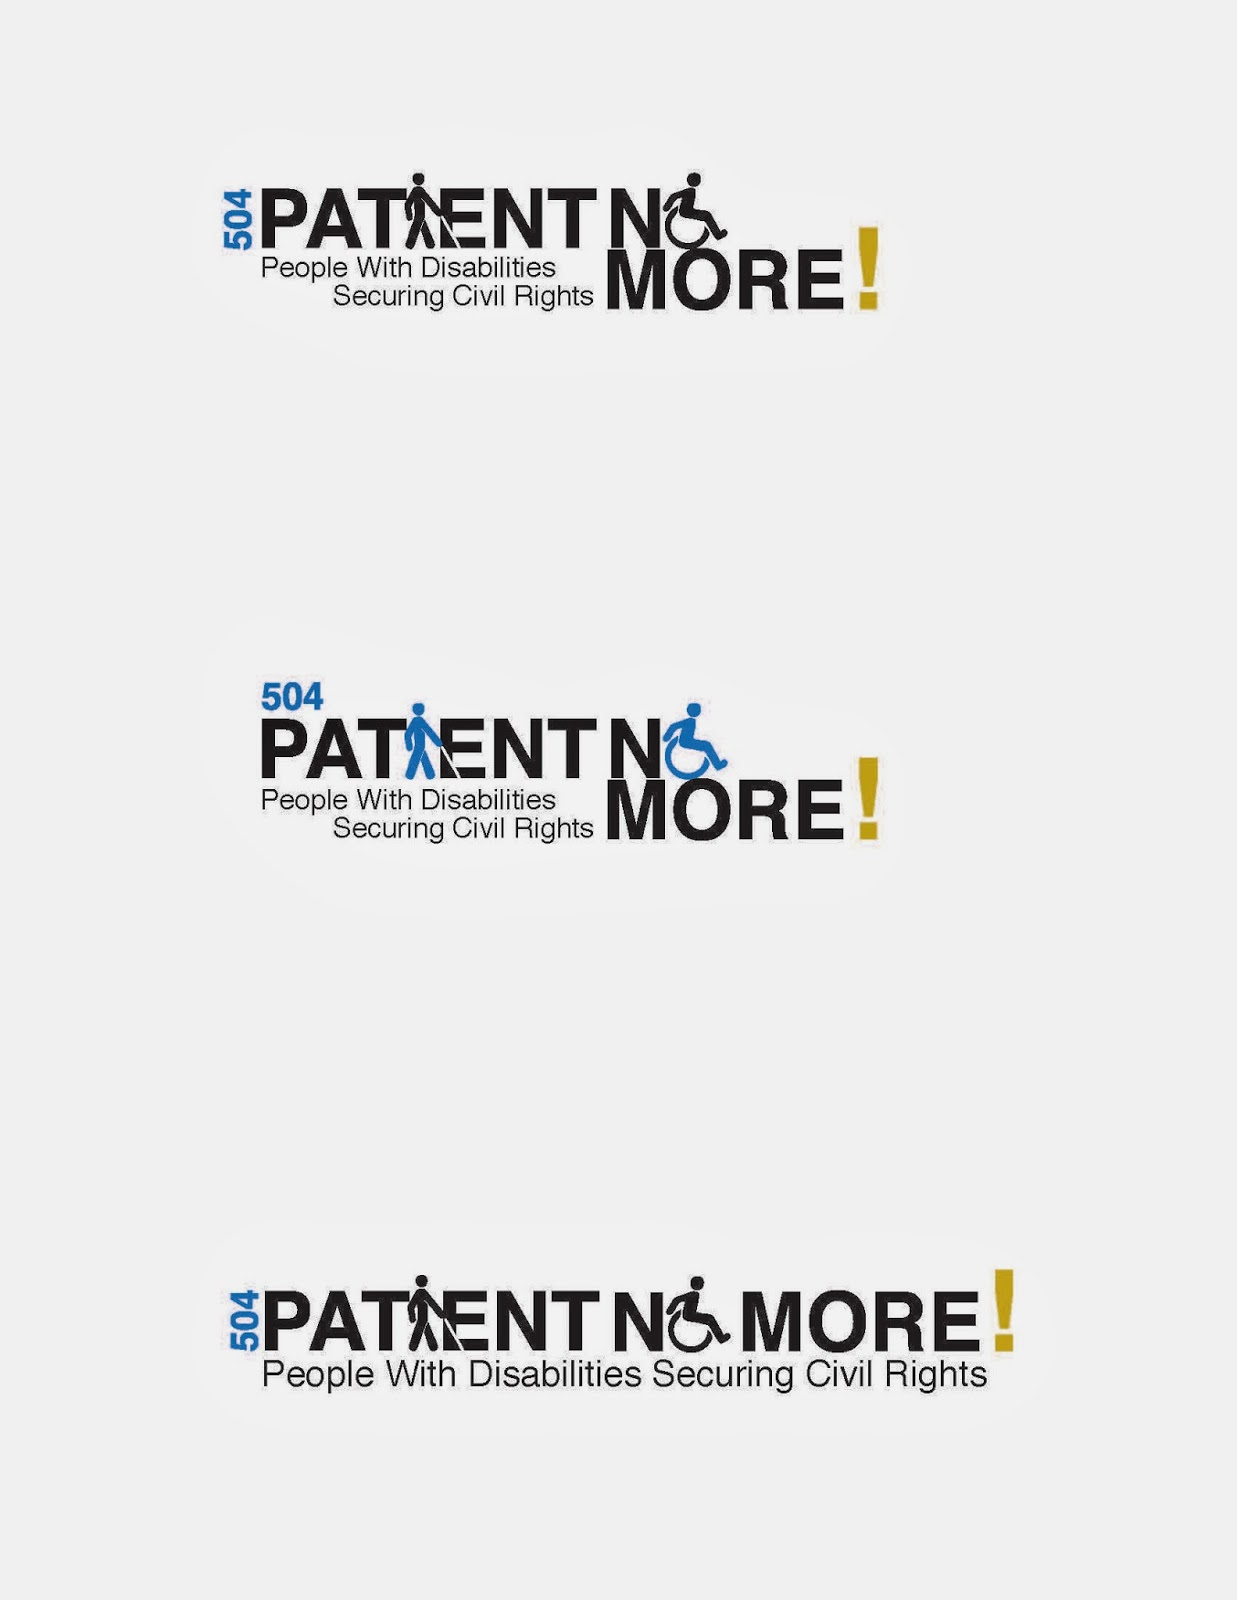 """Patient No More!"" logo idea incorporating disability symbols as letterforms, color included"